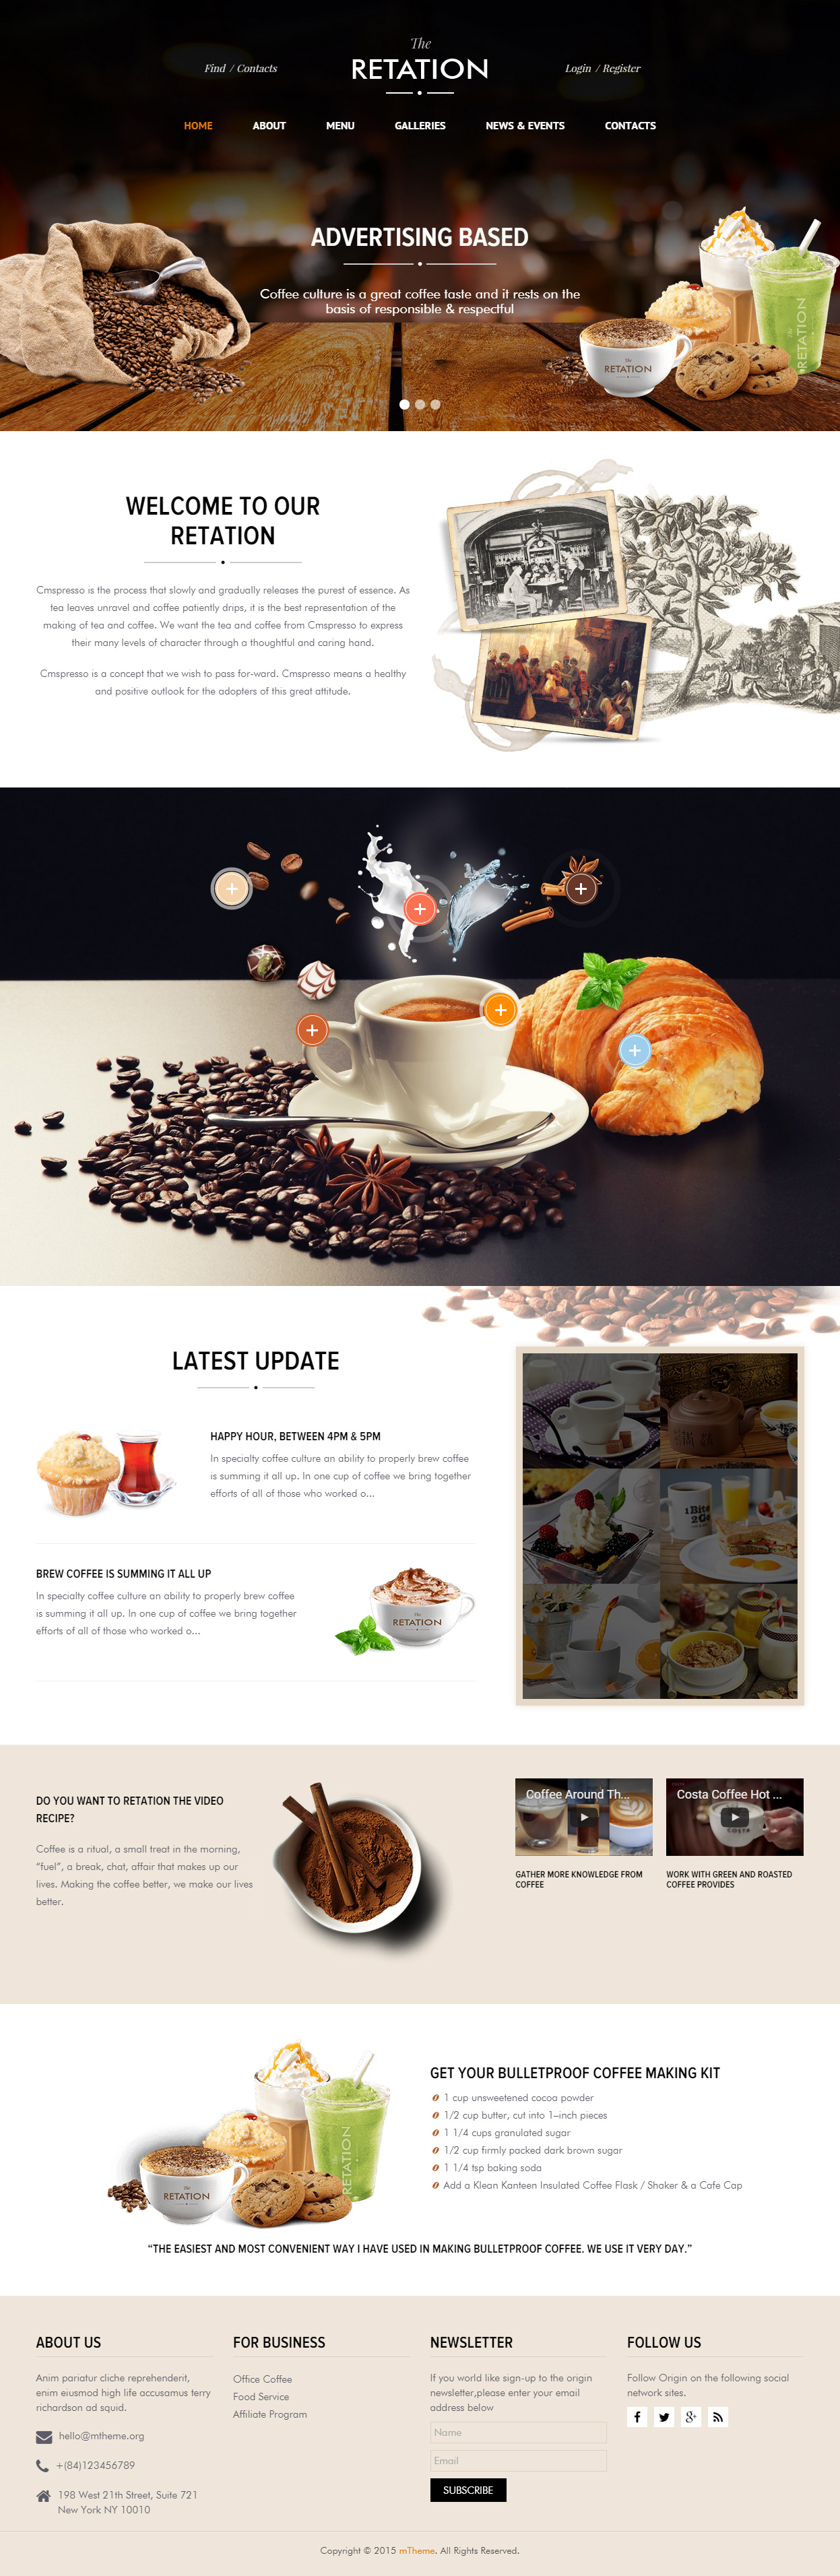 40 Best Cafe and Restaurant Website Templates in 2017 - Responsive ...